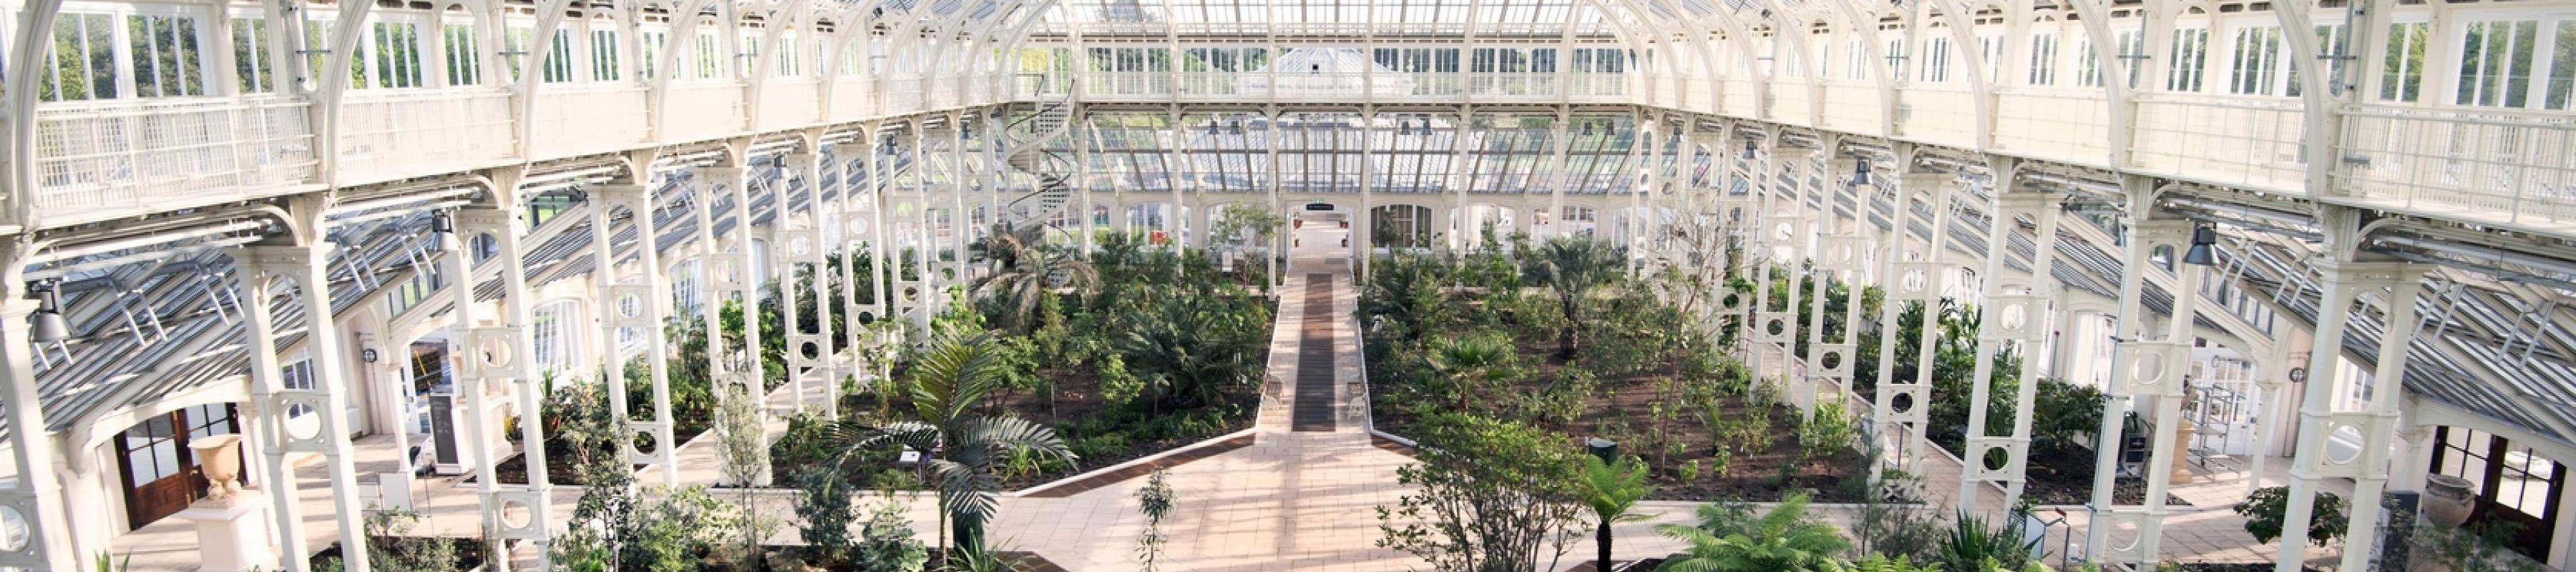 A wide shot taking in the whole Temperate House from above